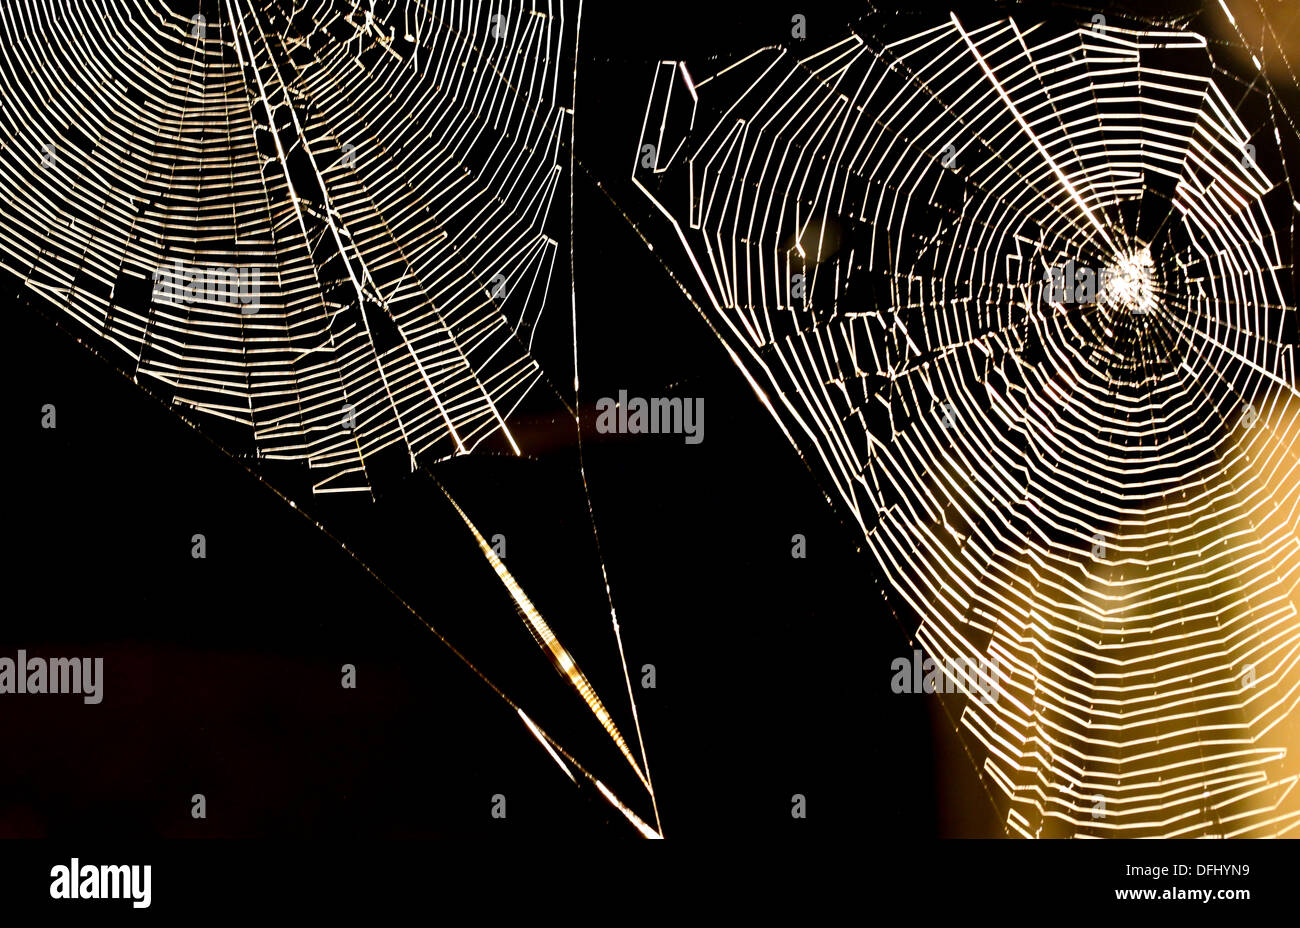 Spiders Webs at Night - Stock Image